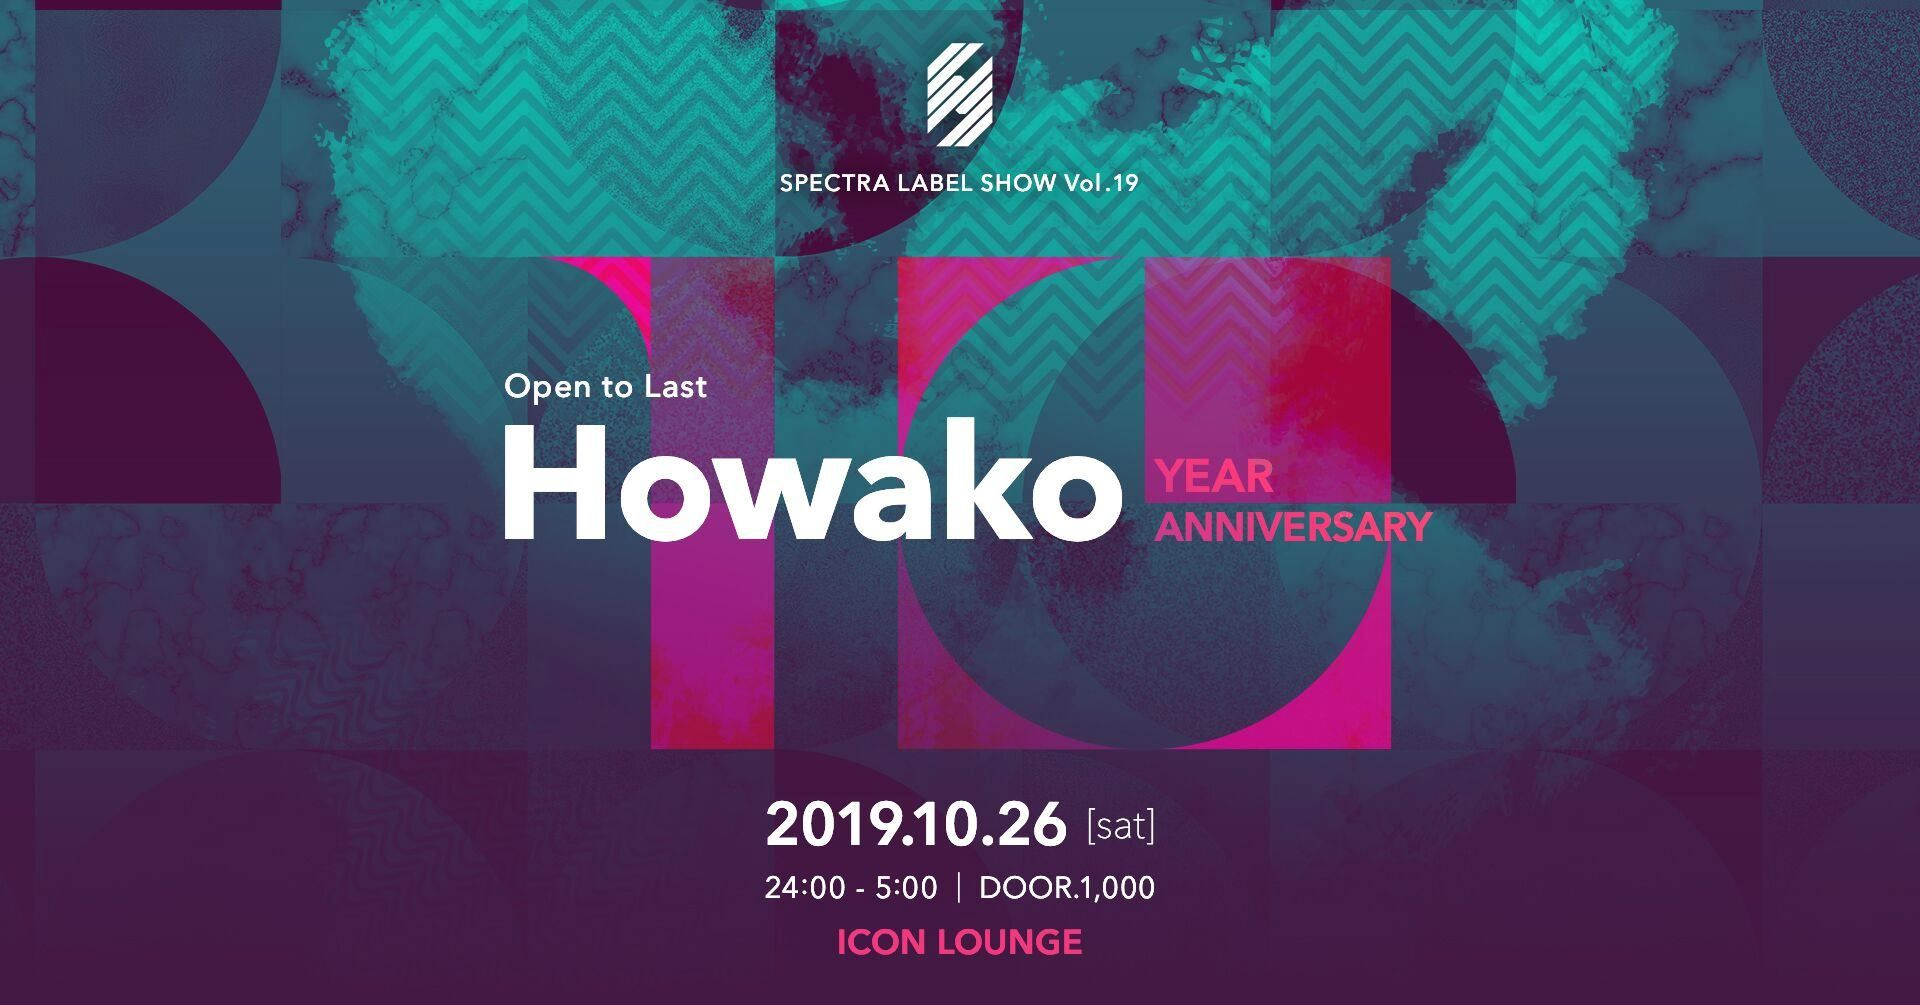 Spectra LABEL SHOW Vol.19 -Howako OPEN to LAST-